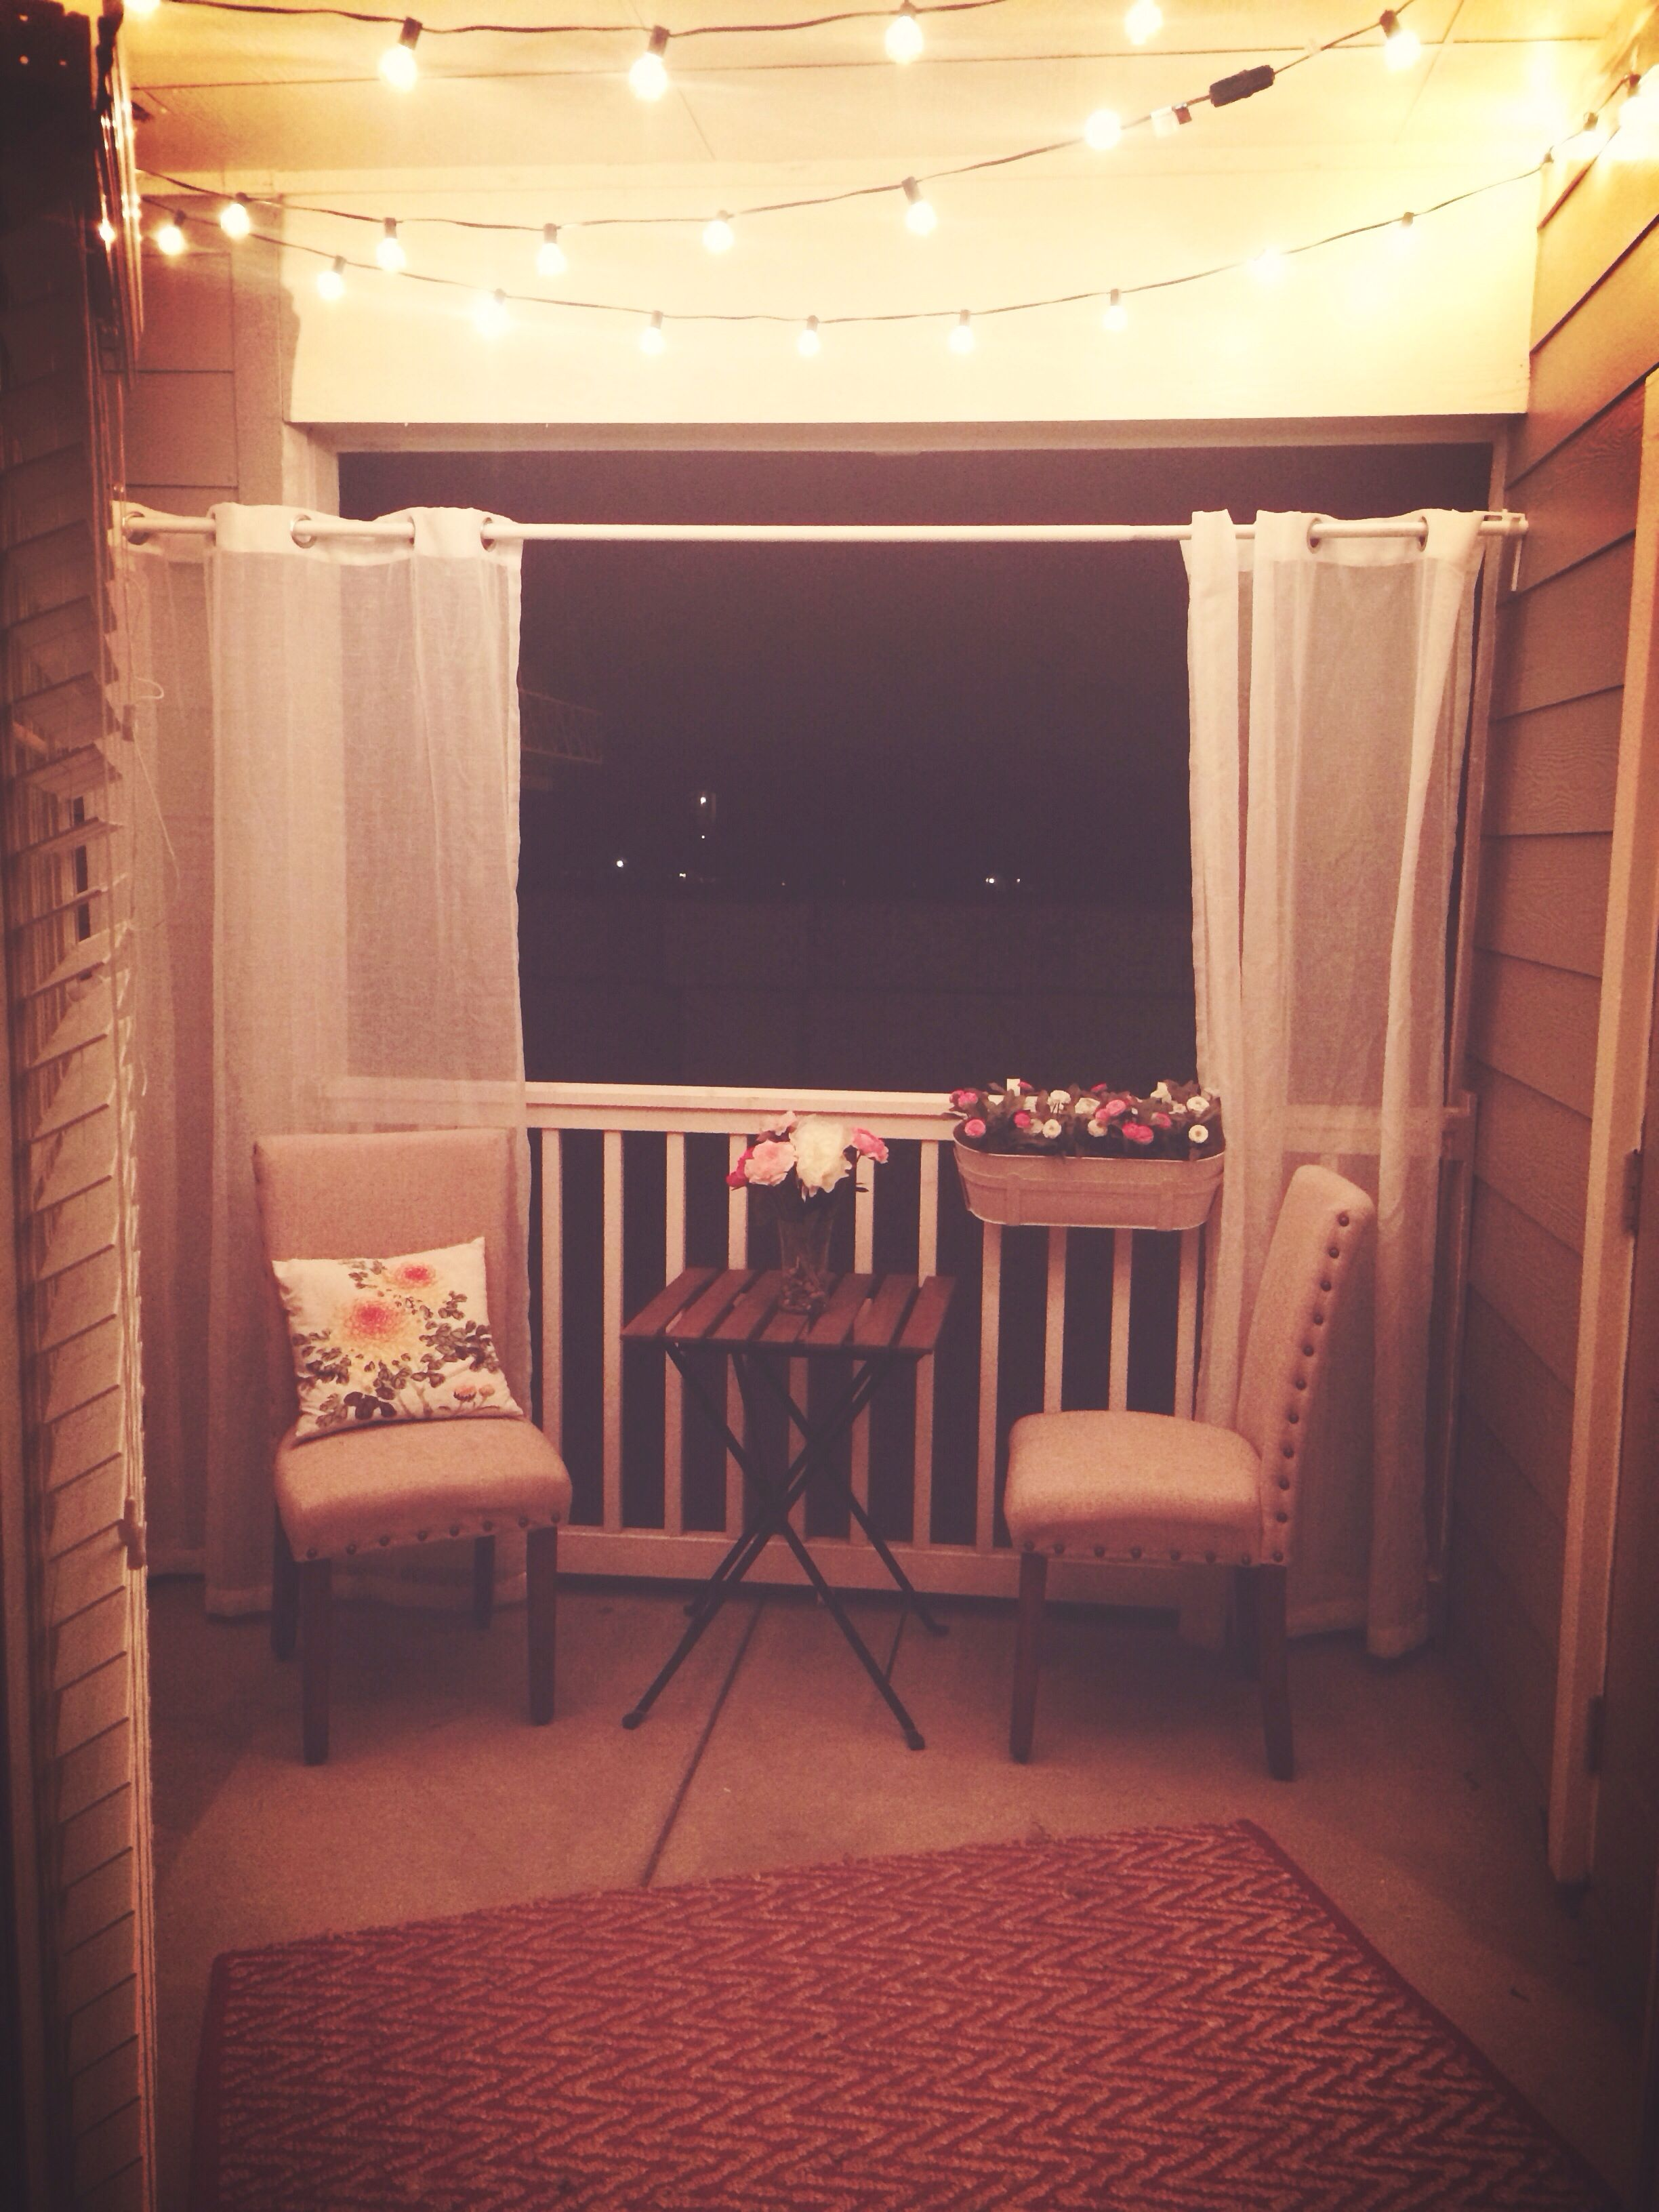 Small Apartment Patio With Lights Strung At Night 3